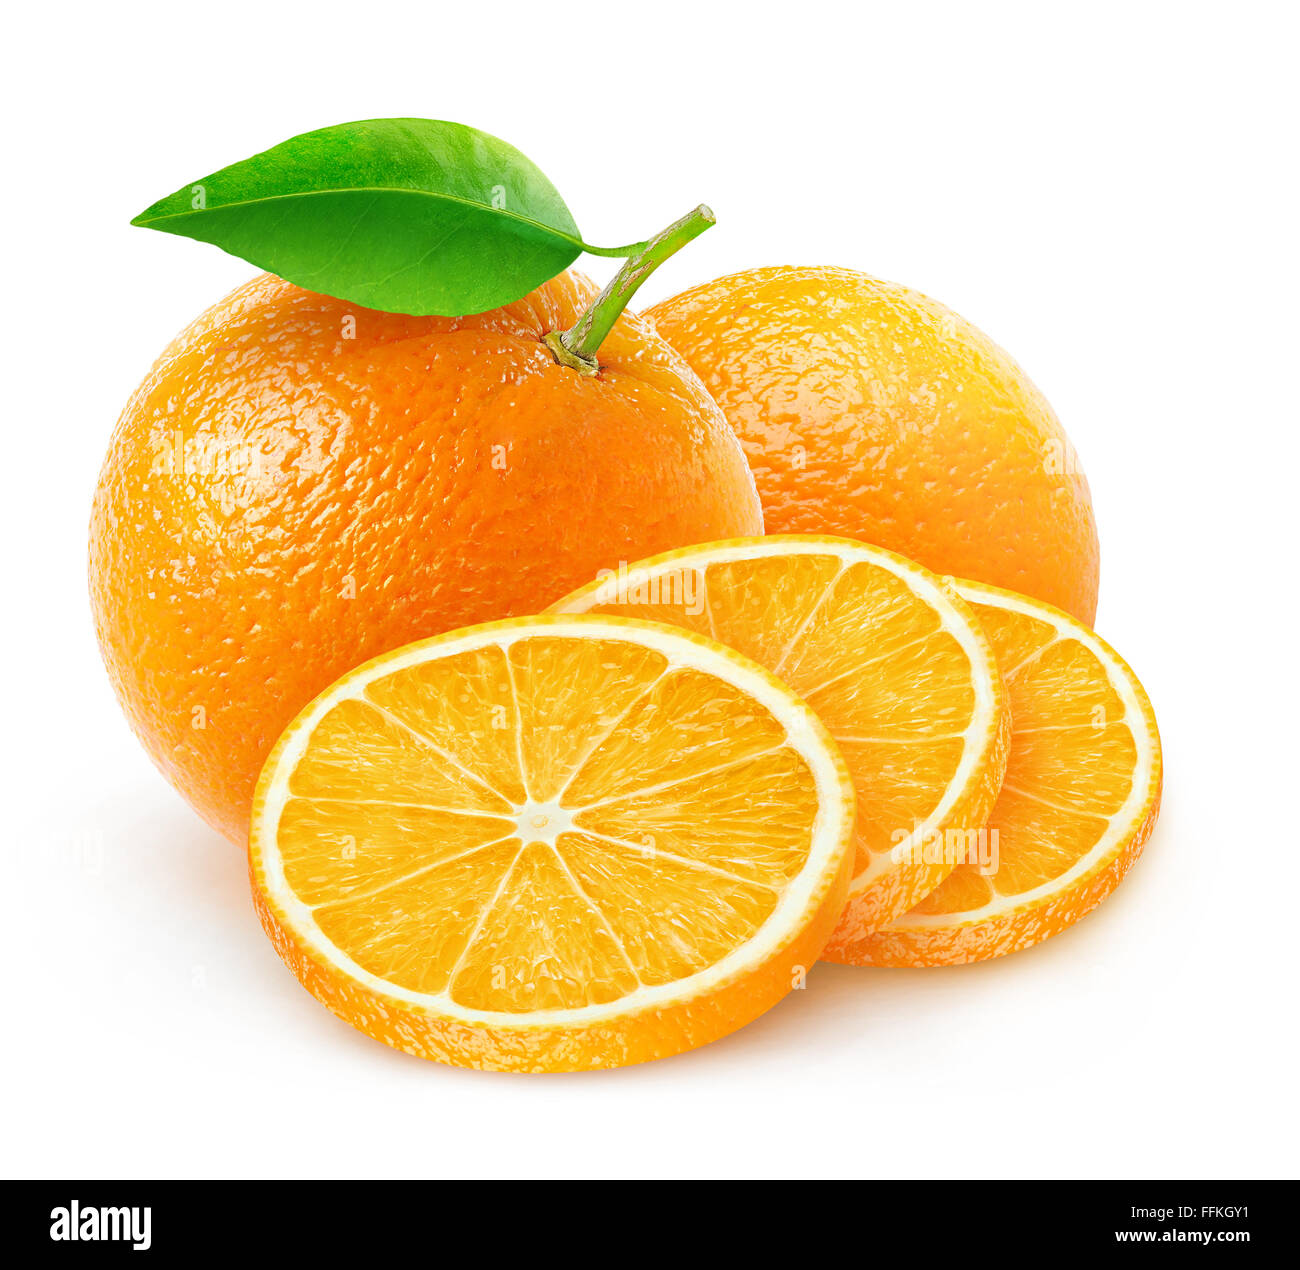 Cut oranges isolated on white with clipping path - Stock Image